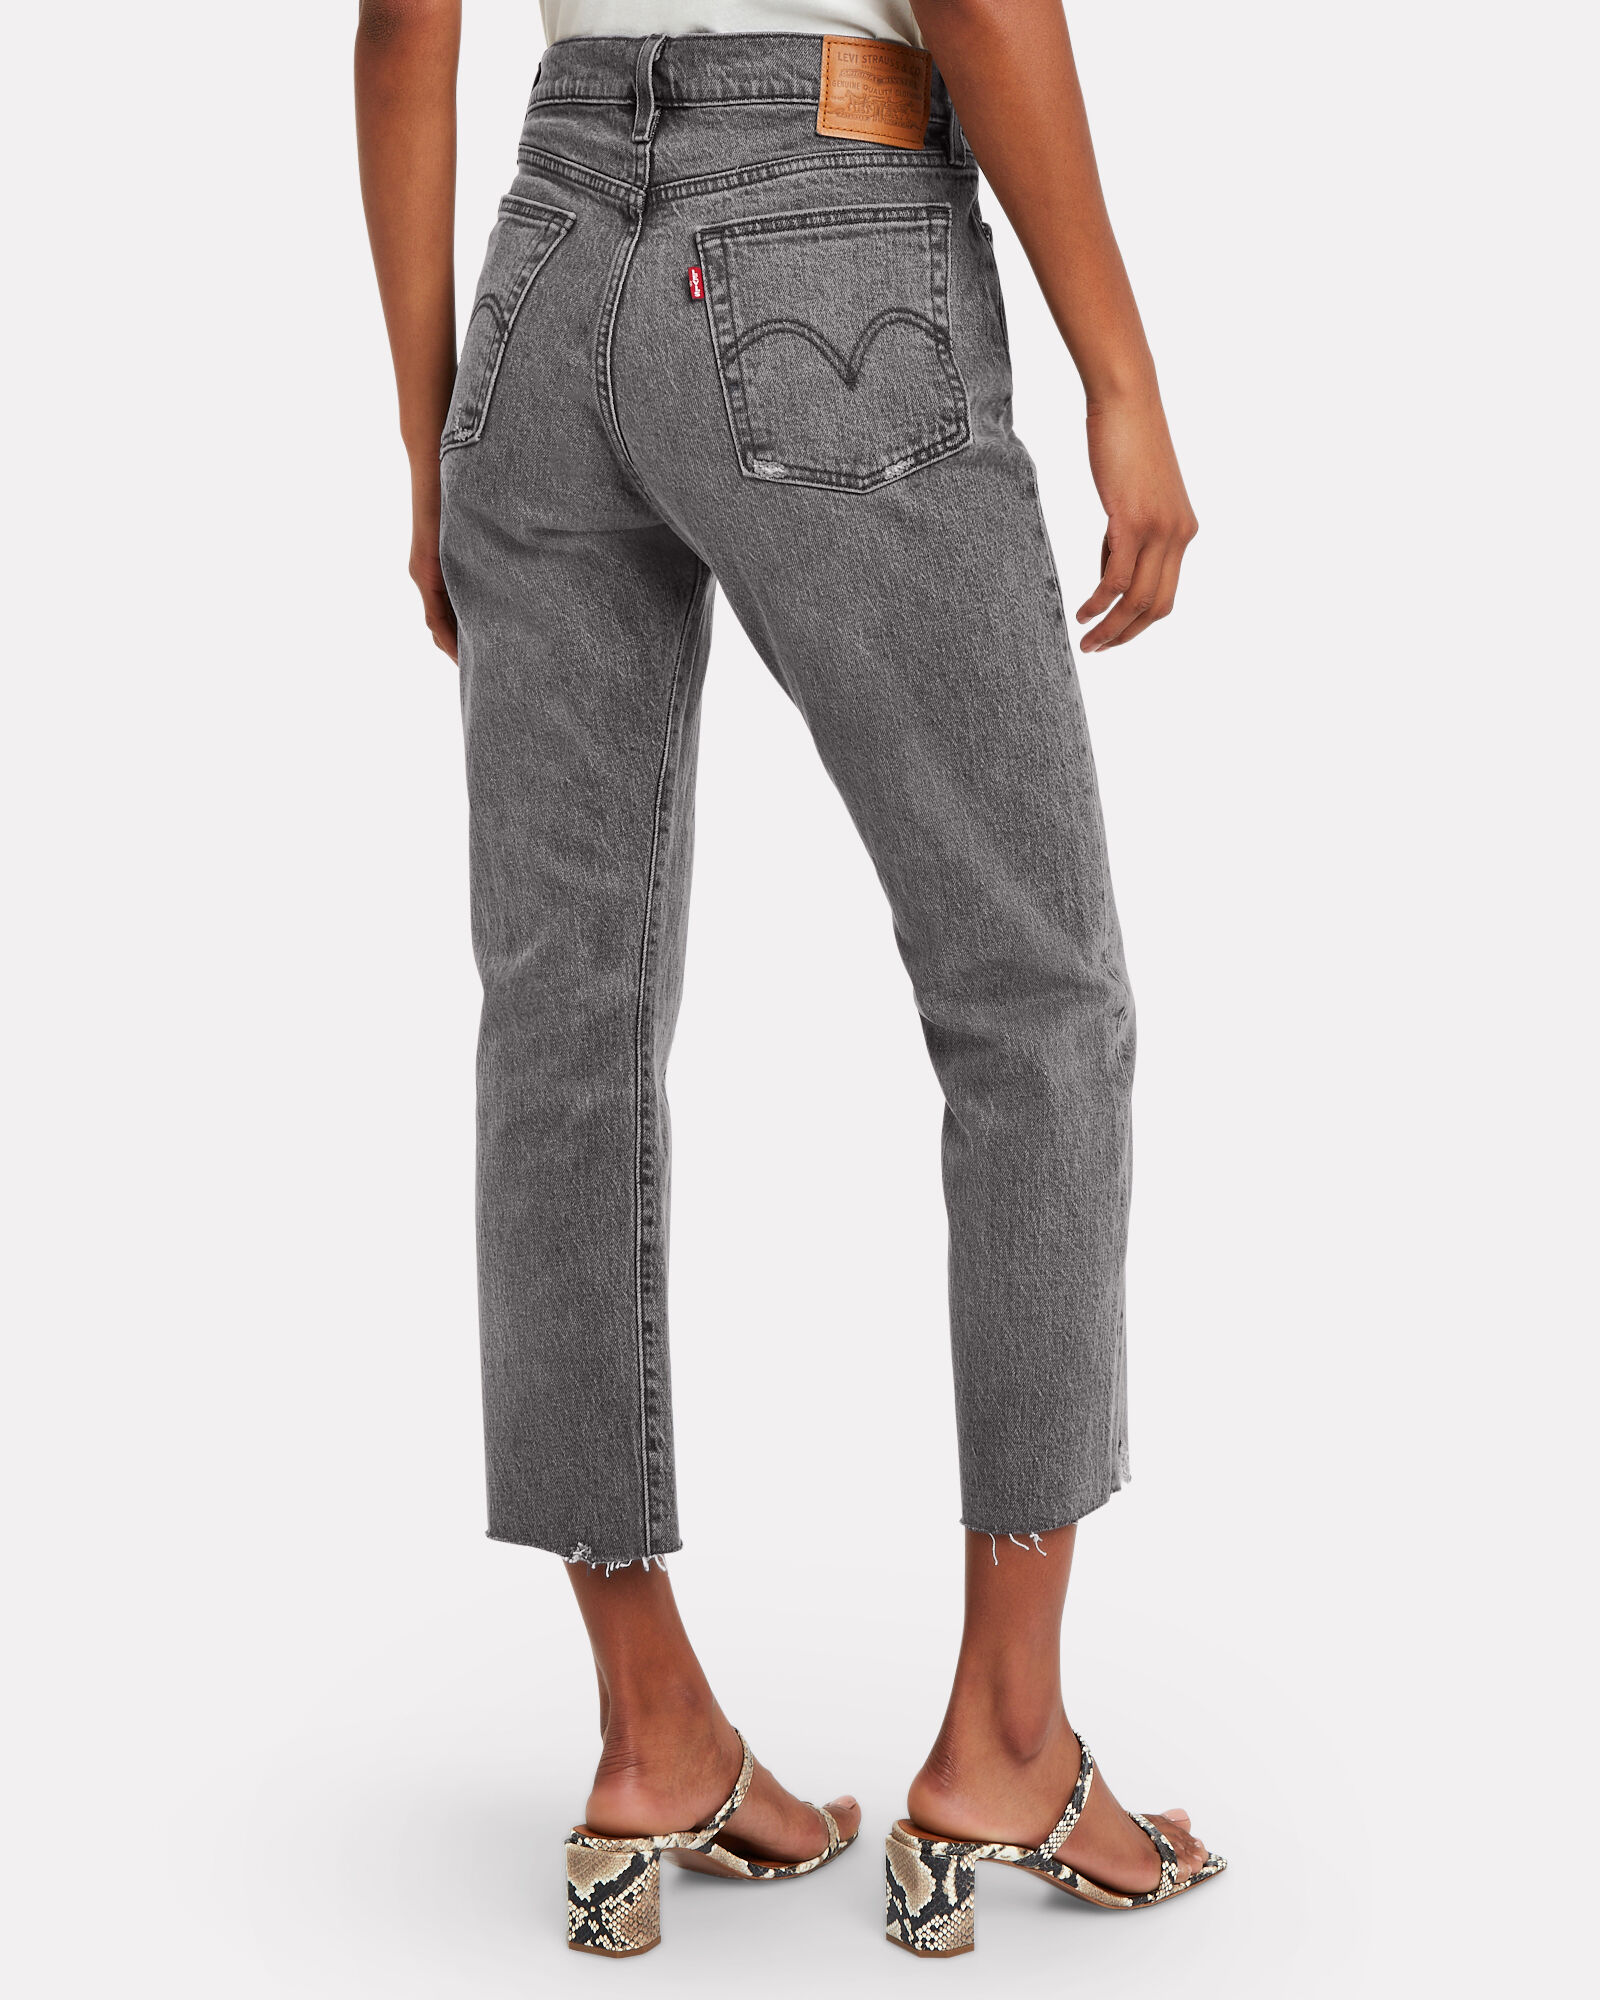 Wedgie Icon High-Rise Jeans, GREY, hi-res